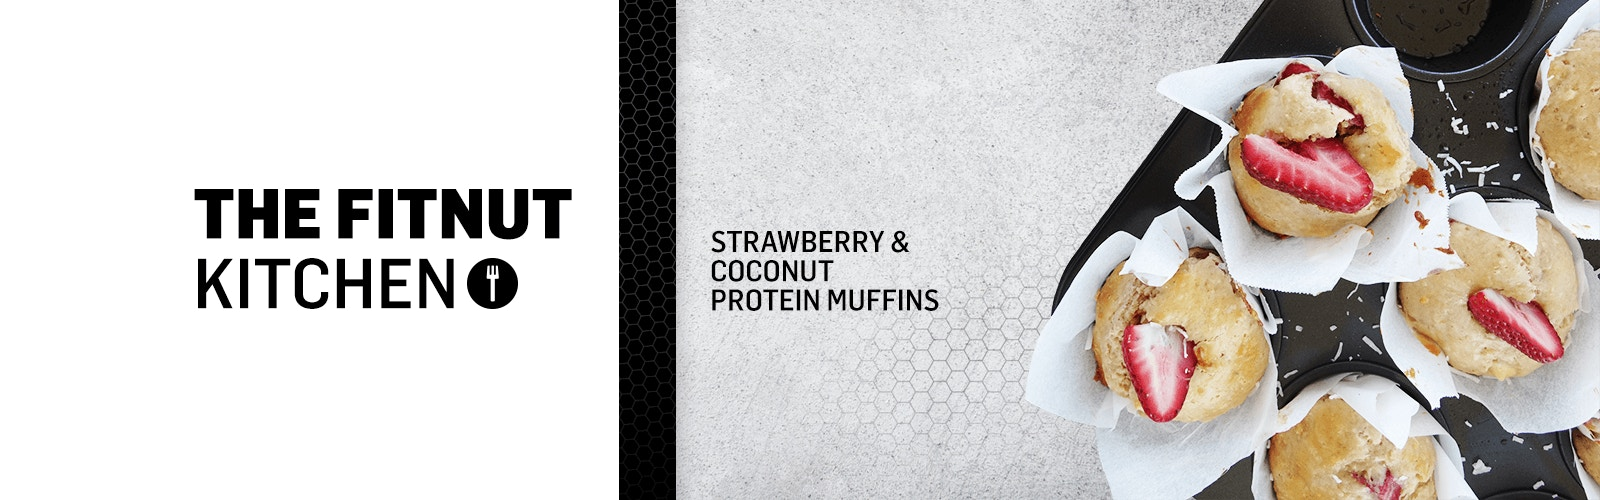 THE FITNUT KITCHEN – PROTEIN MUFFINS